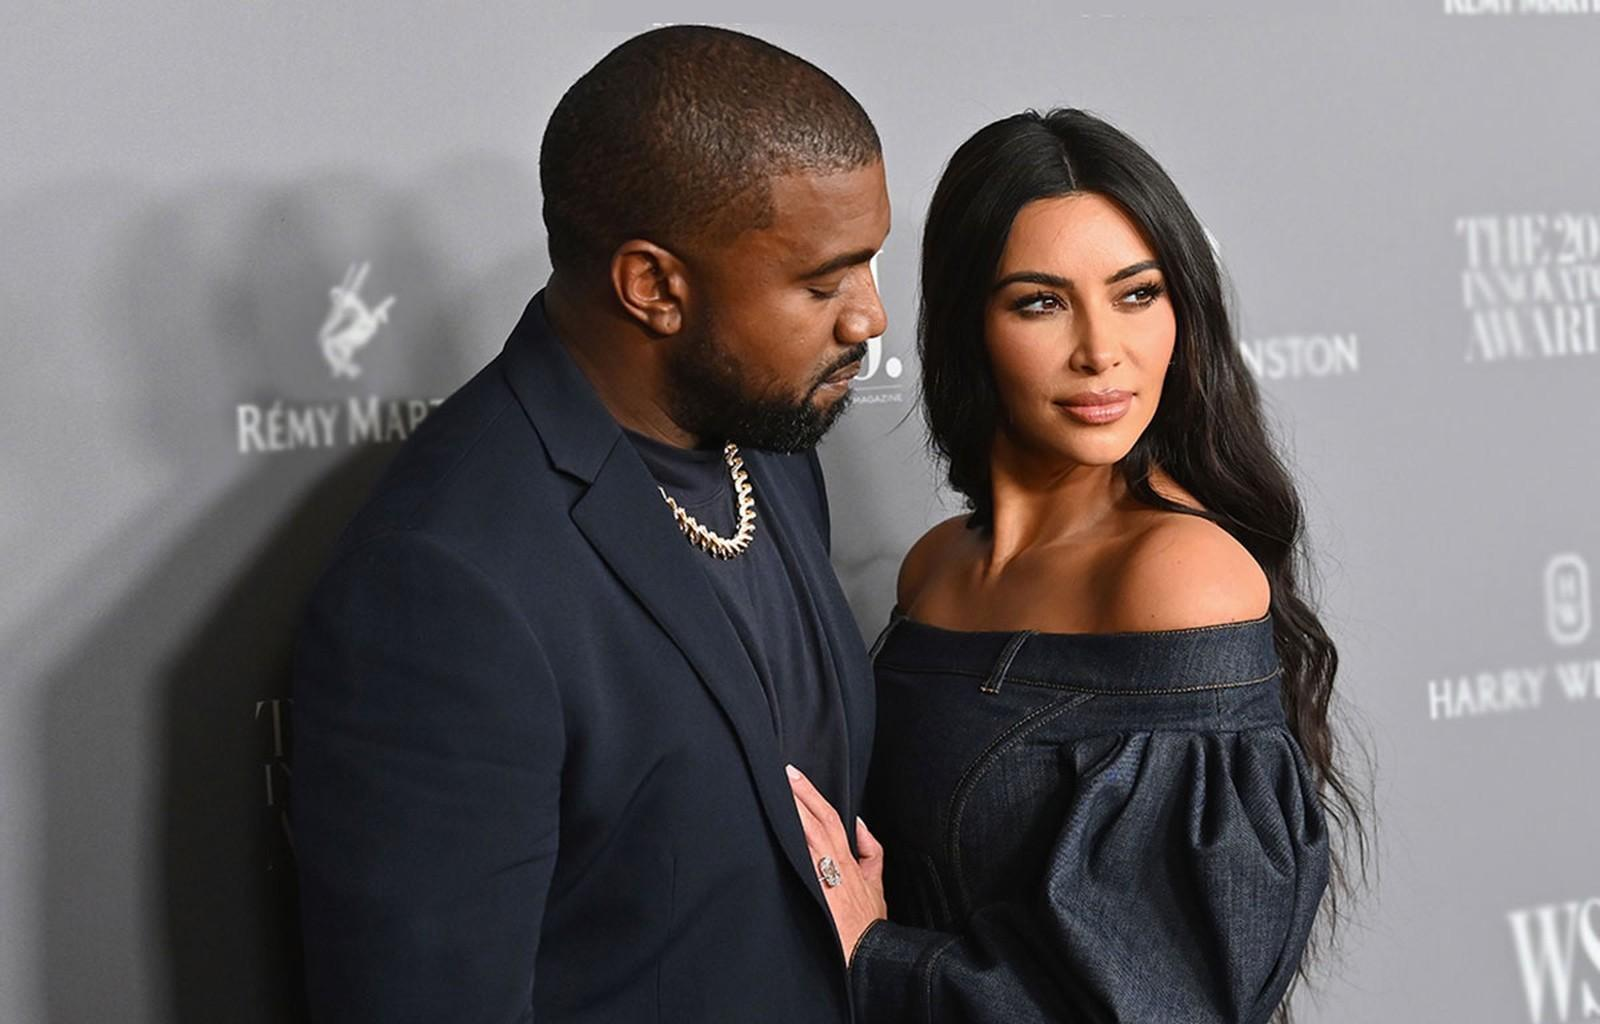 KUWTK: Kim Kardashian And Kanye West Reportedly No Longer On Speaking Terms After The Rapper Changes His Number!